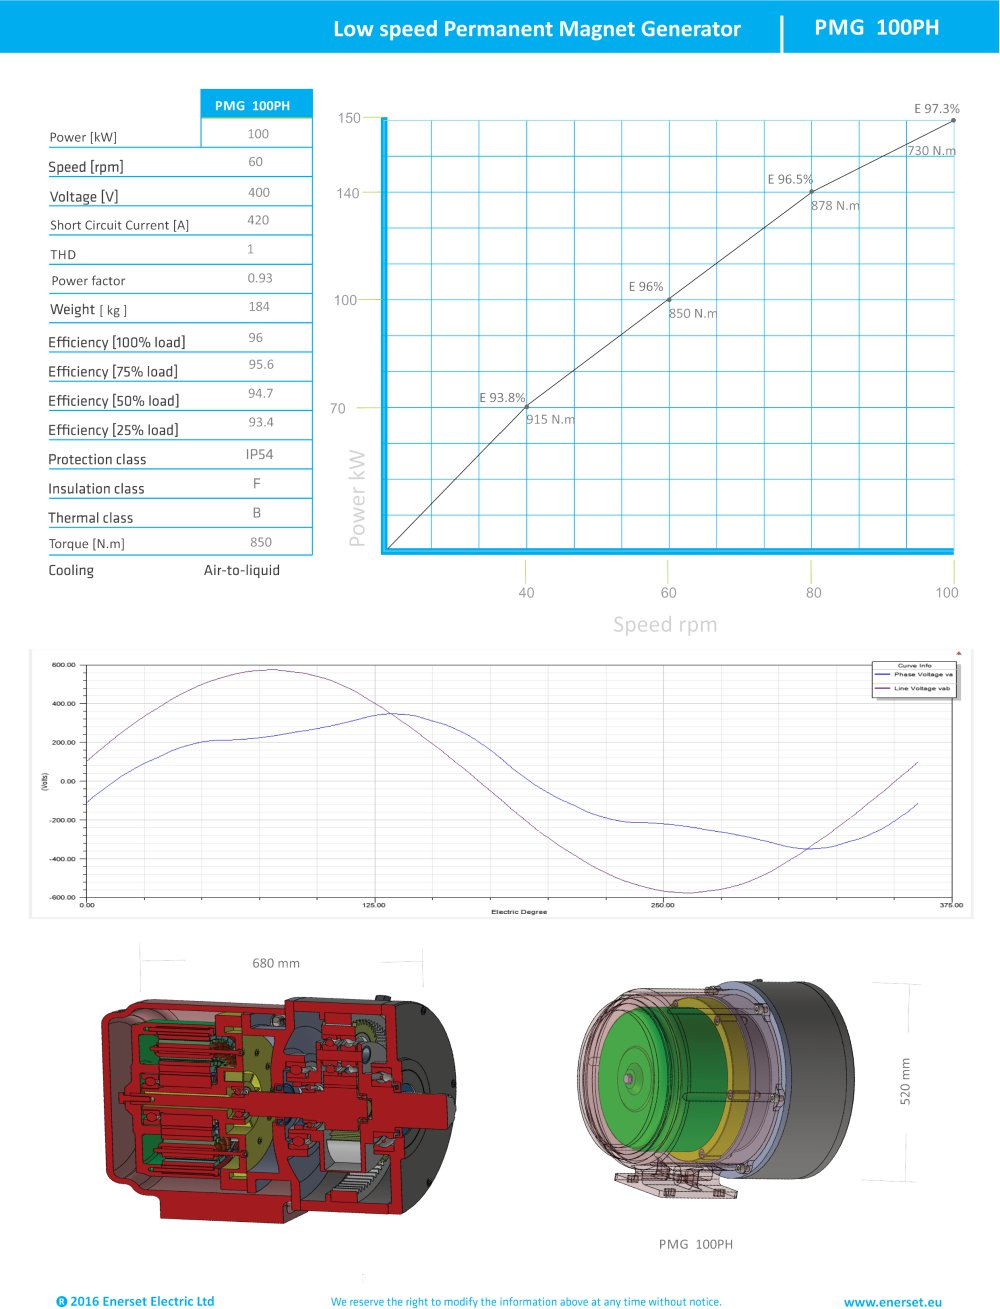 100ph Low Speed Permanent Magnets Generator Enerset Electric Ltd Diagram Pdf 1 Pages